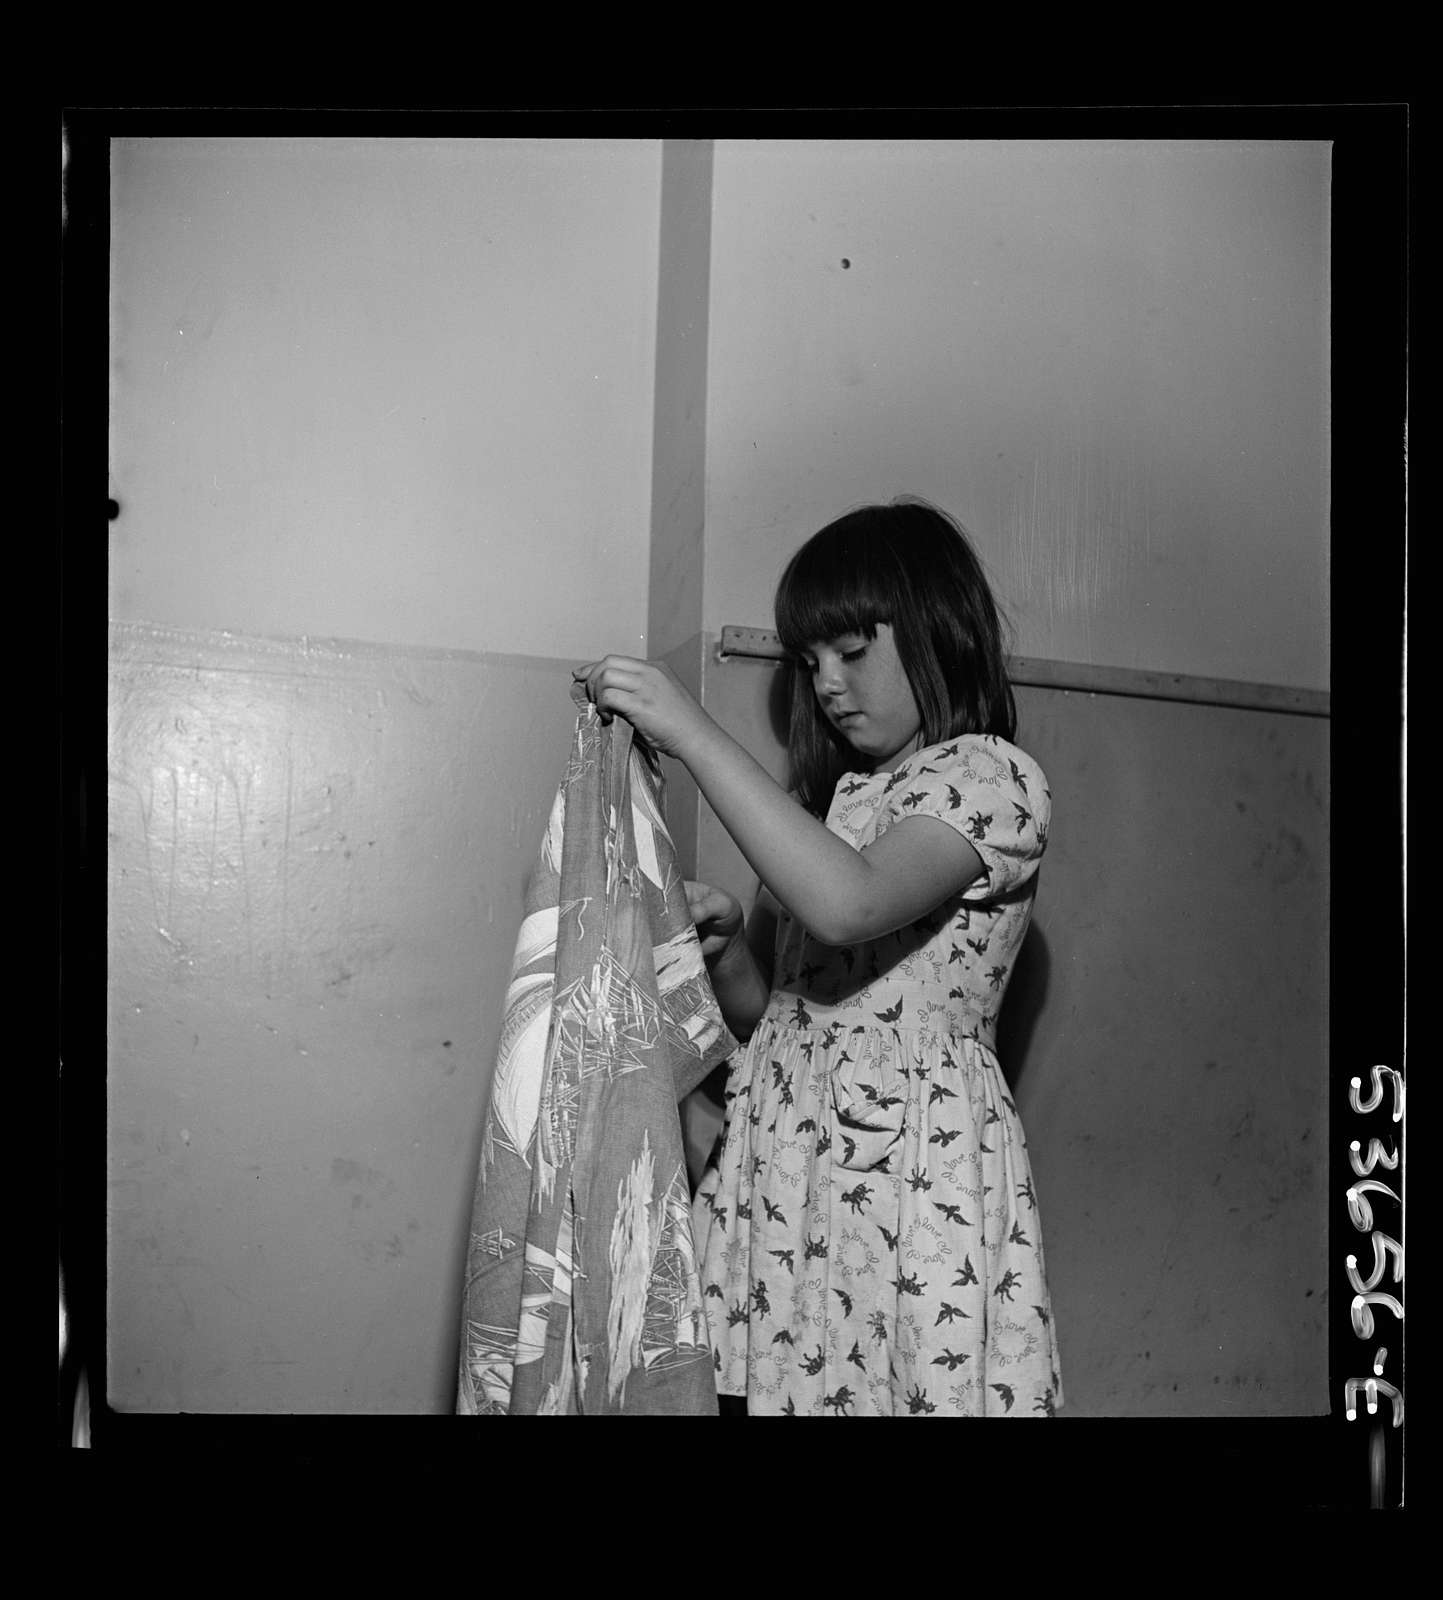 New York, New York. A little girl folding a blanket after a rest period at Greenwich House where she and many children receive day care while their mothers work. They enjoy work in clay, games, etc. as well as rest in this neighborhood center